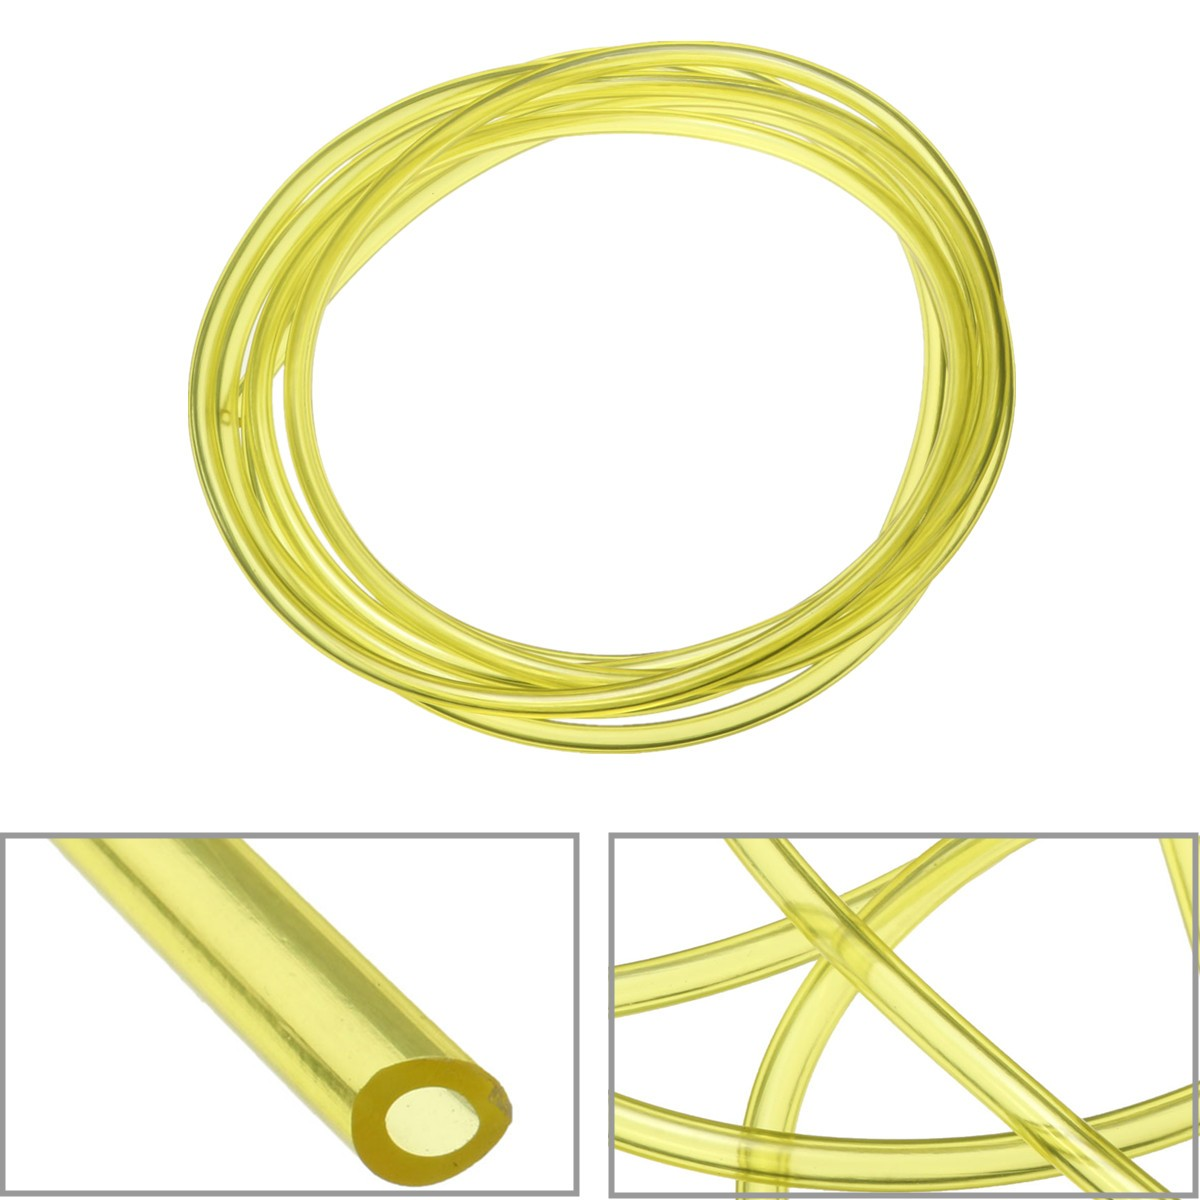 3 Meter Yellow Tygon Petrol Fuel Gas Line Pipe Hose  Oil And Gas Resistant For Trimmer Chainsaw Saw Blowerfor Chainsaws Blowers